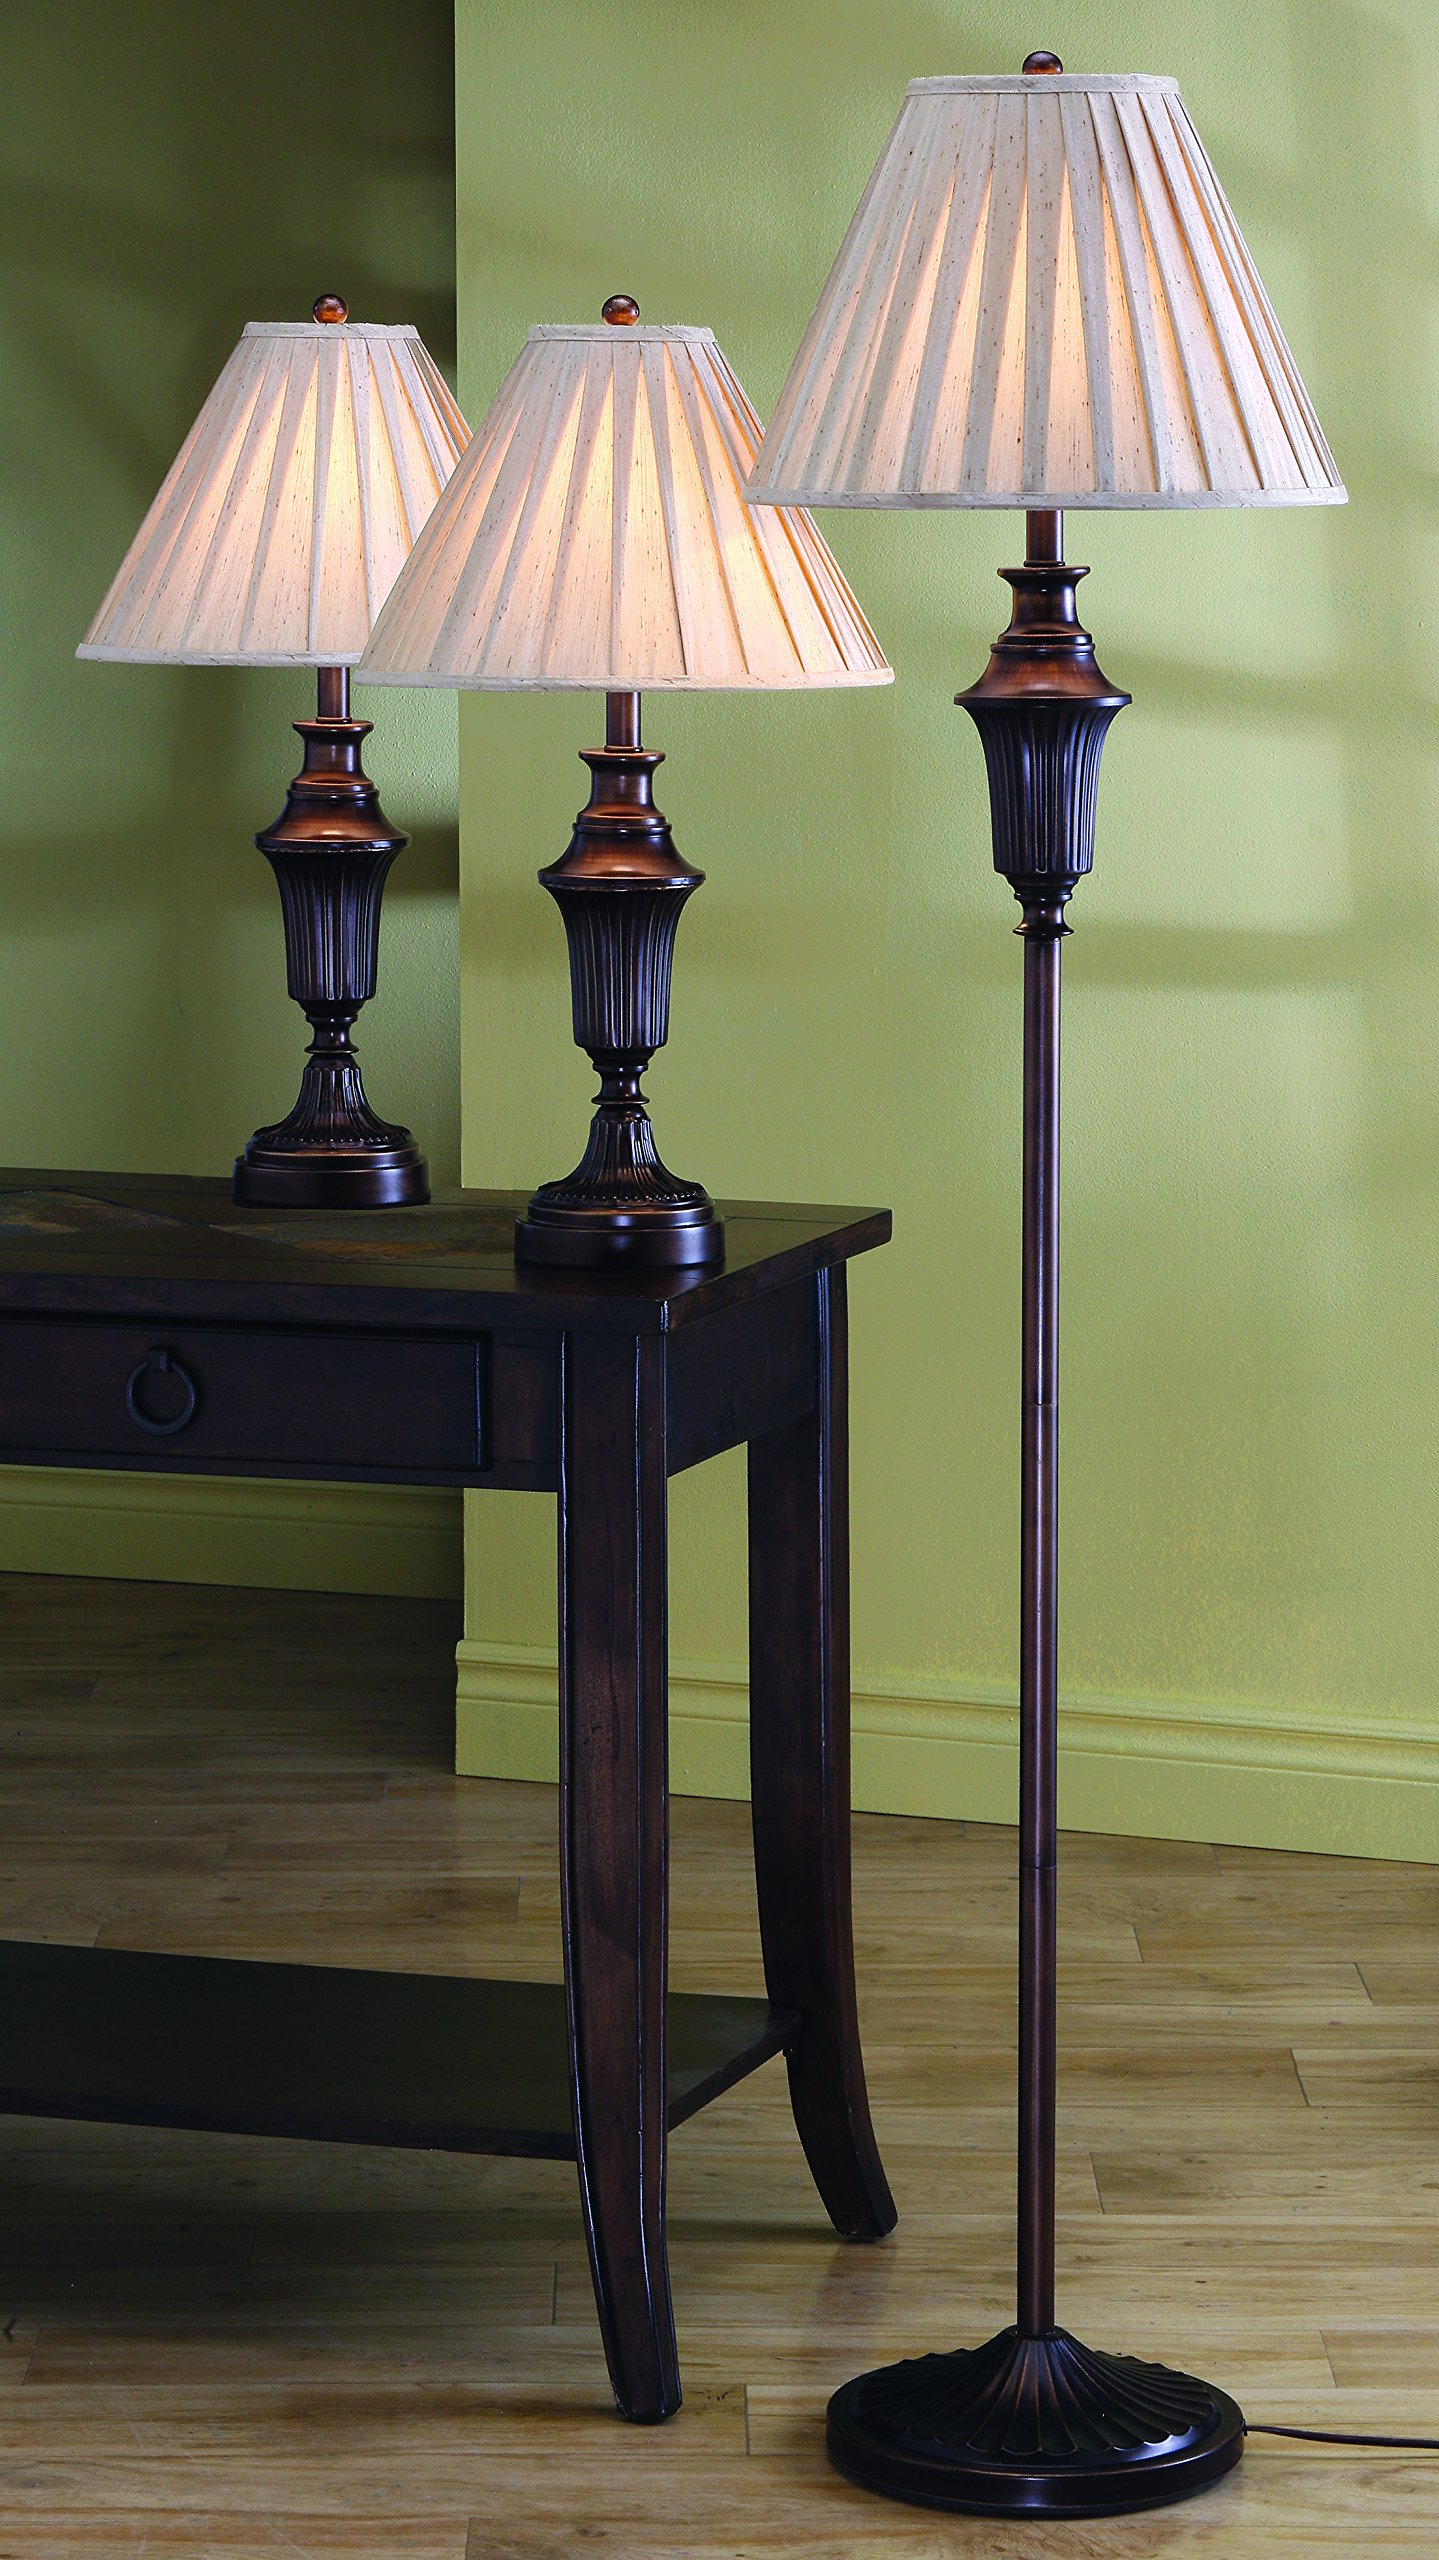 2 Table Lamps and 1 Floor Lamp Dark Brown Finish 3 Piece ...